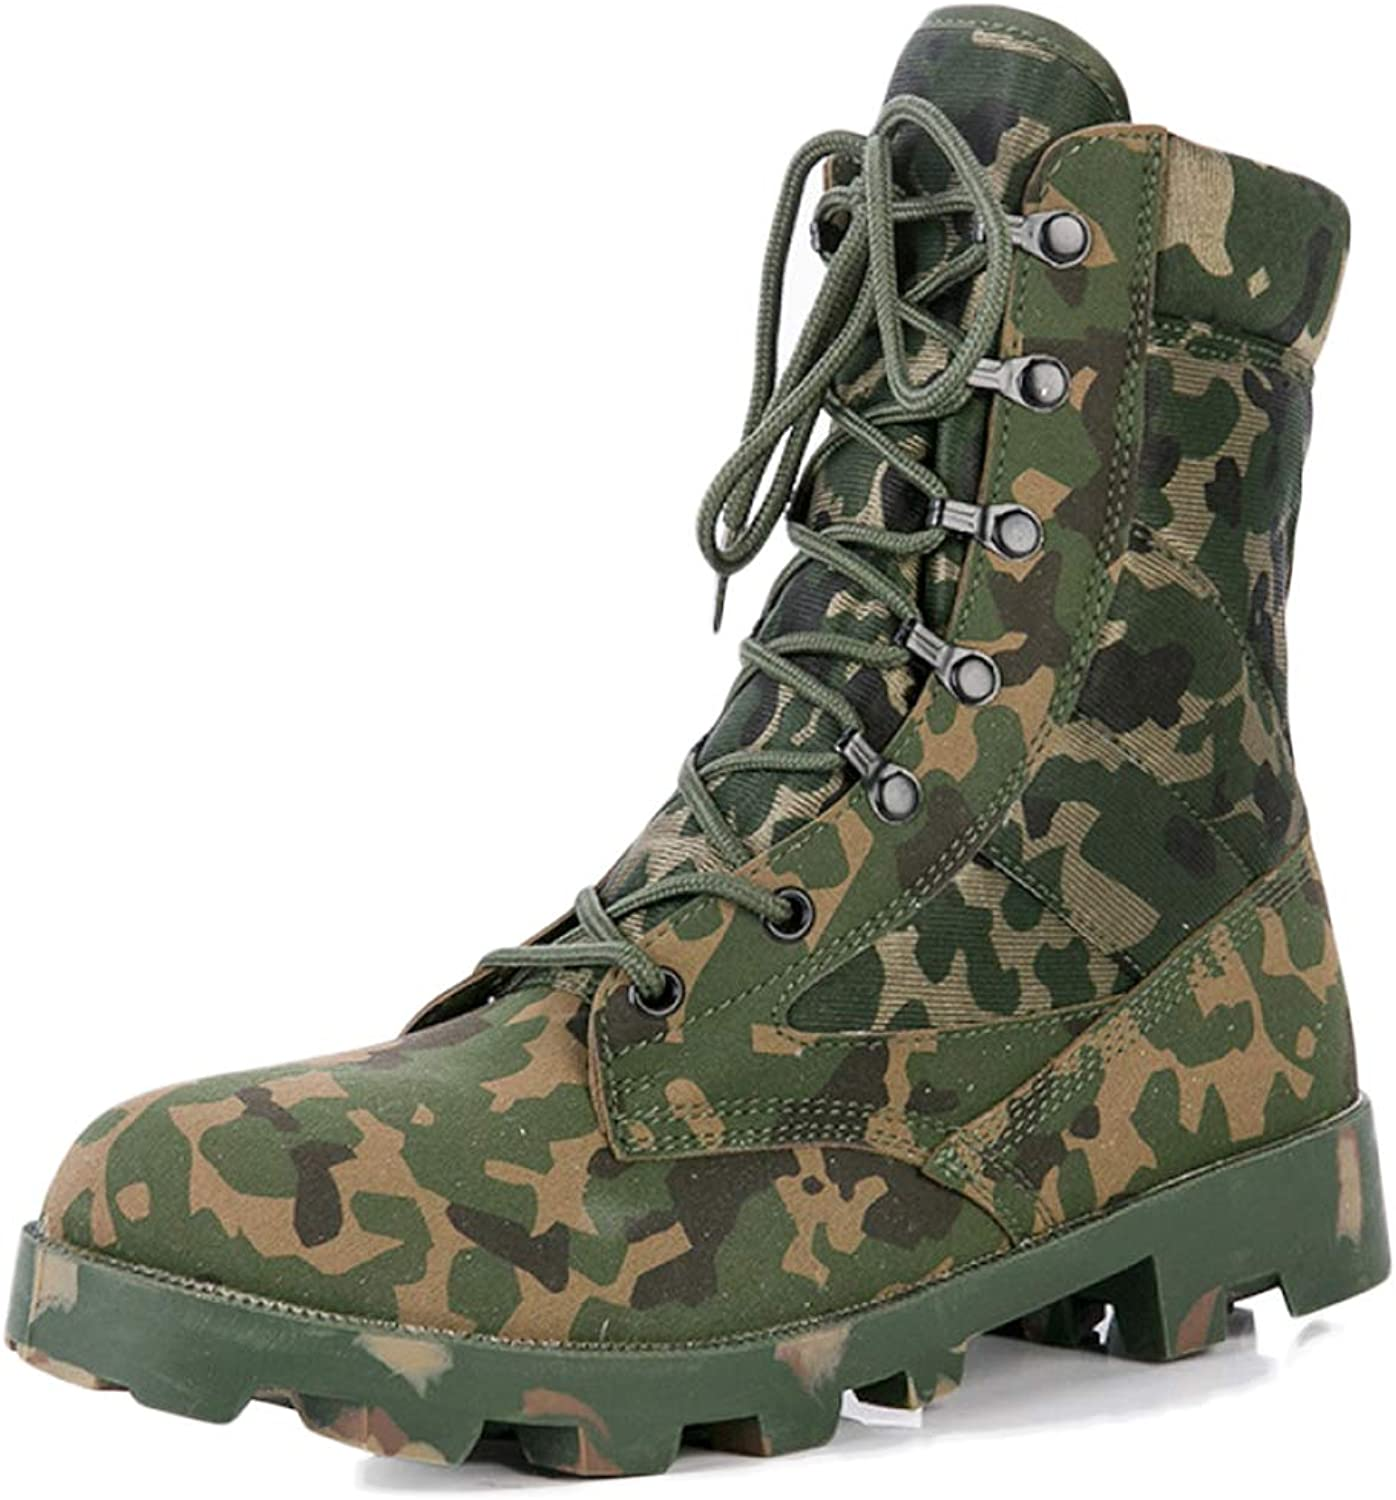 YC High Tops Desert Boots Combat Boots Outdoor Safety Tactical Boots For Men's Police Training Military Boots Riding Hiking Special shoes